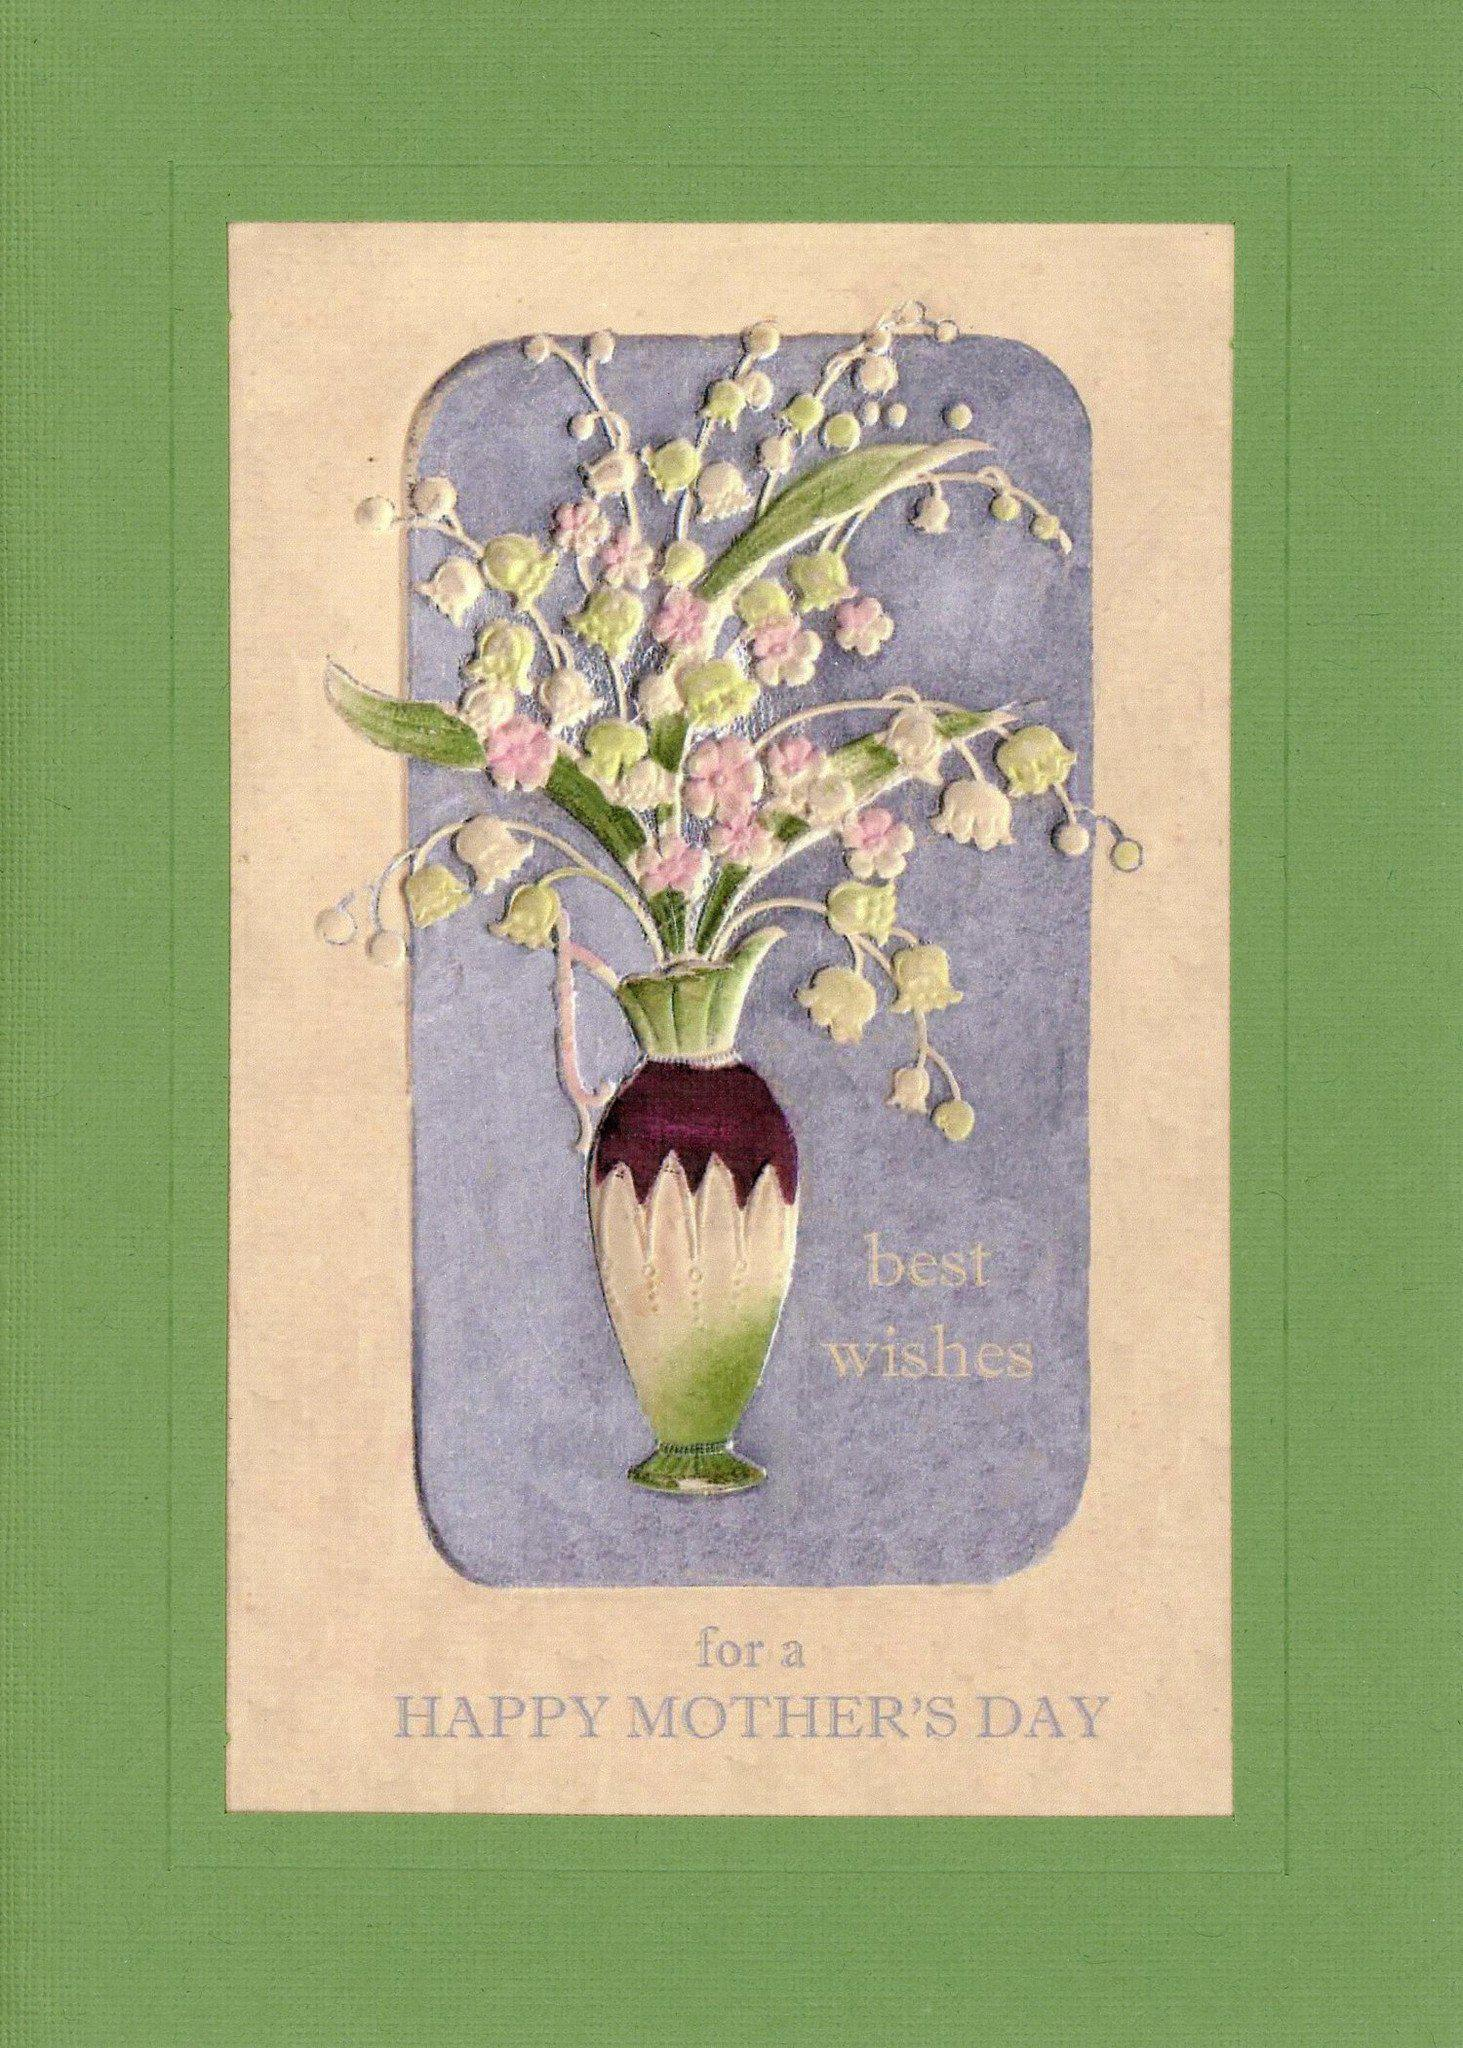 Best Wishes for Mother's Day-Greetings from the Past-Plymouth Cards